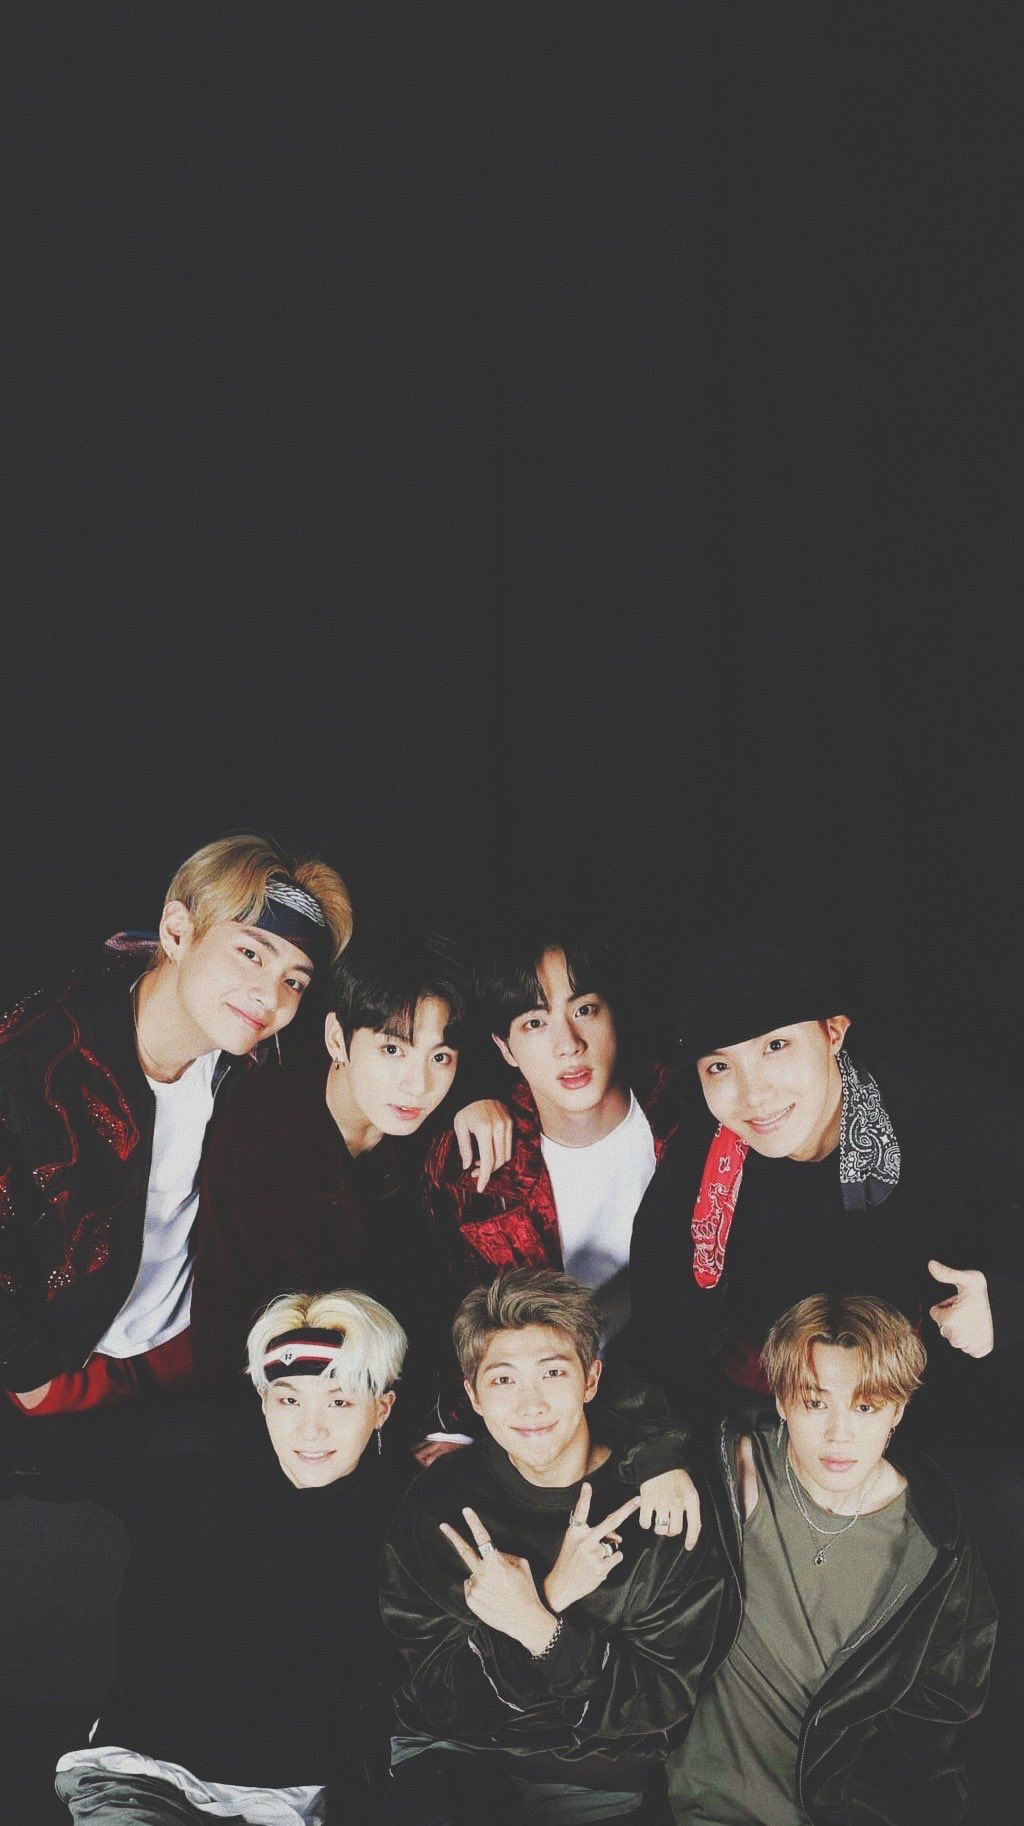 Handsome Cute Boy Hd Wallpaper Pin By Cherry Swag🍒 On Bts Pinterest Teamwork Bts And